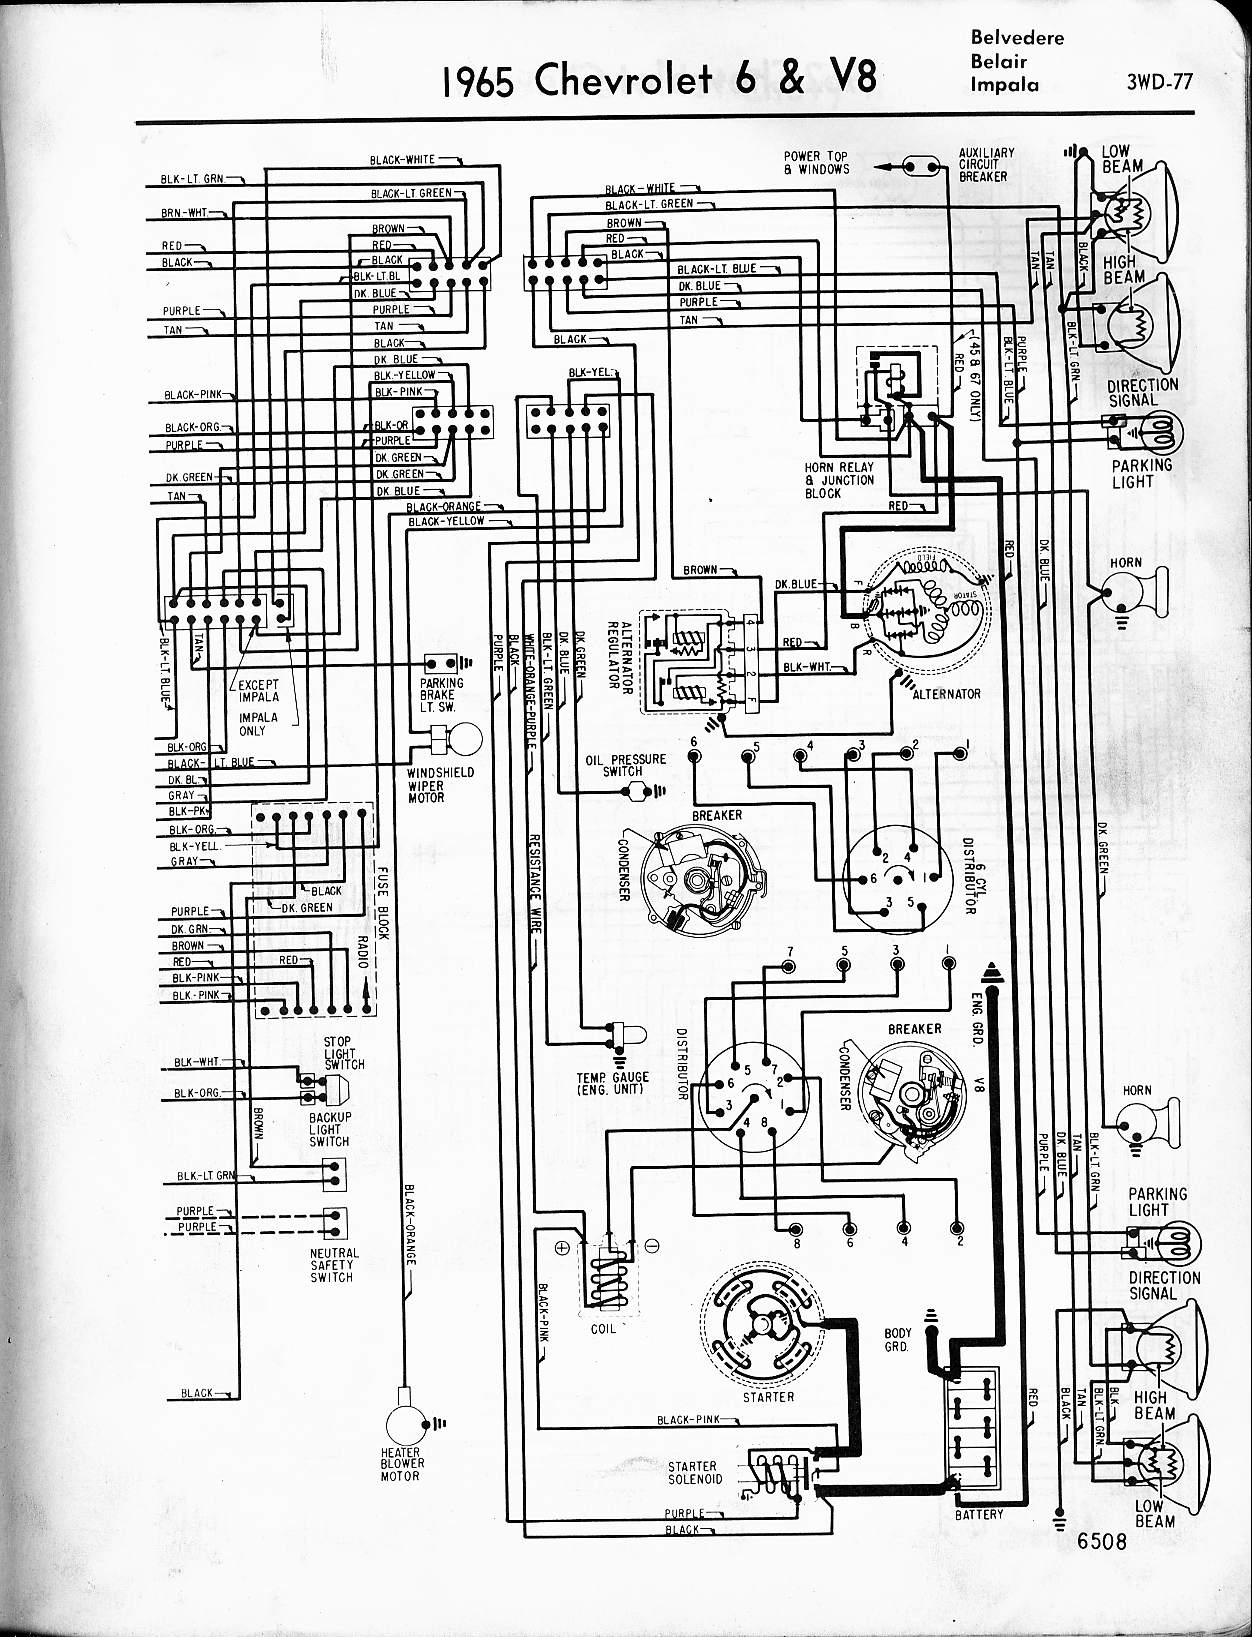 MWireChev65_3WD 077 chevy diagrams 1965 chevelle wiring harness at reclaimingppi.co